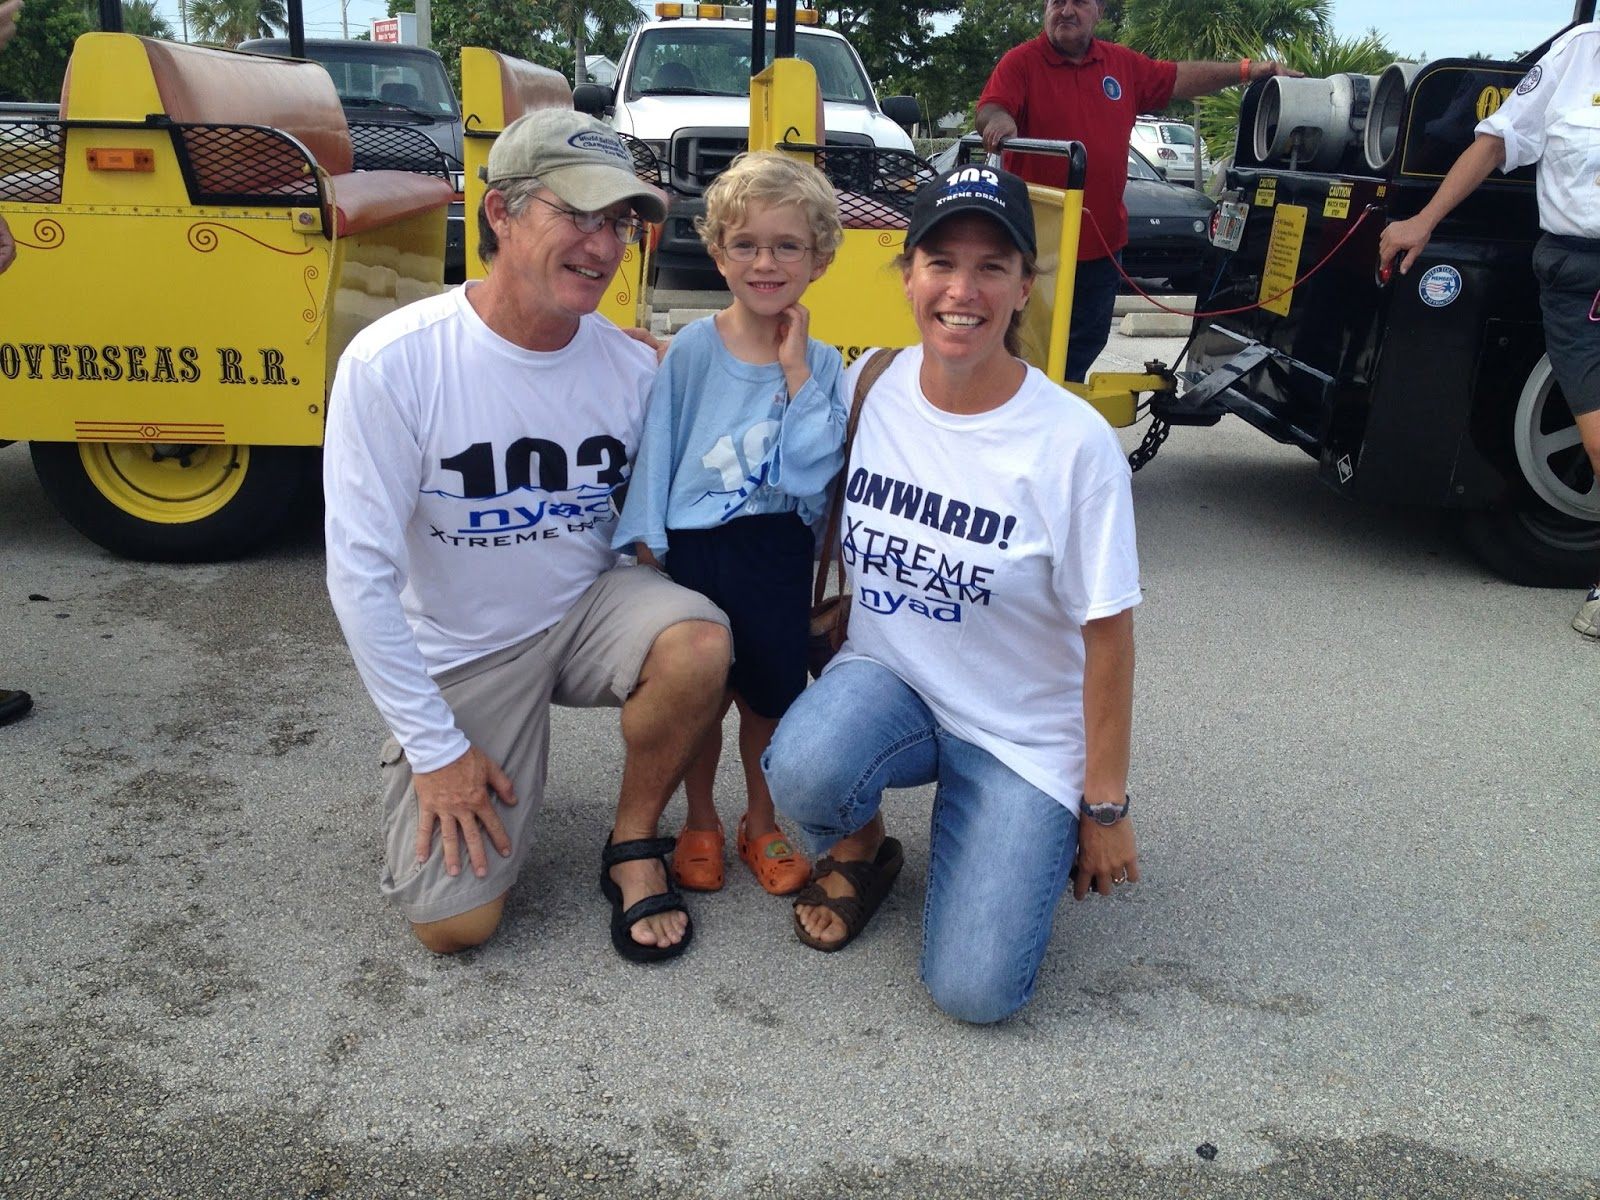 Team members and supporters gather at Key West High School before the Conch Tour Train parade. photo credit: JoAnn Murray